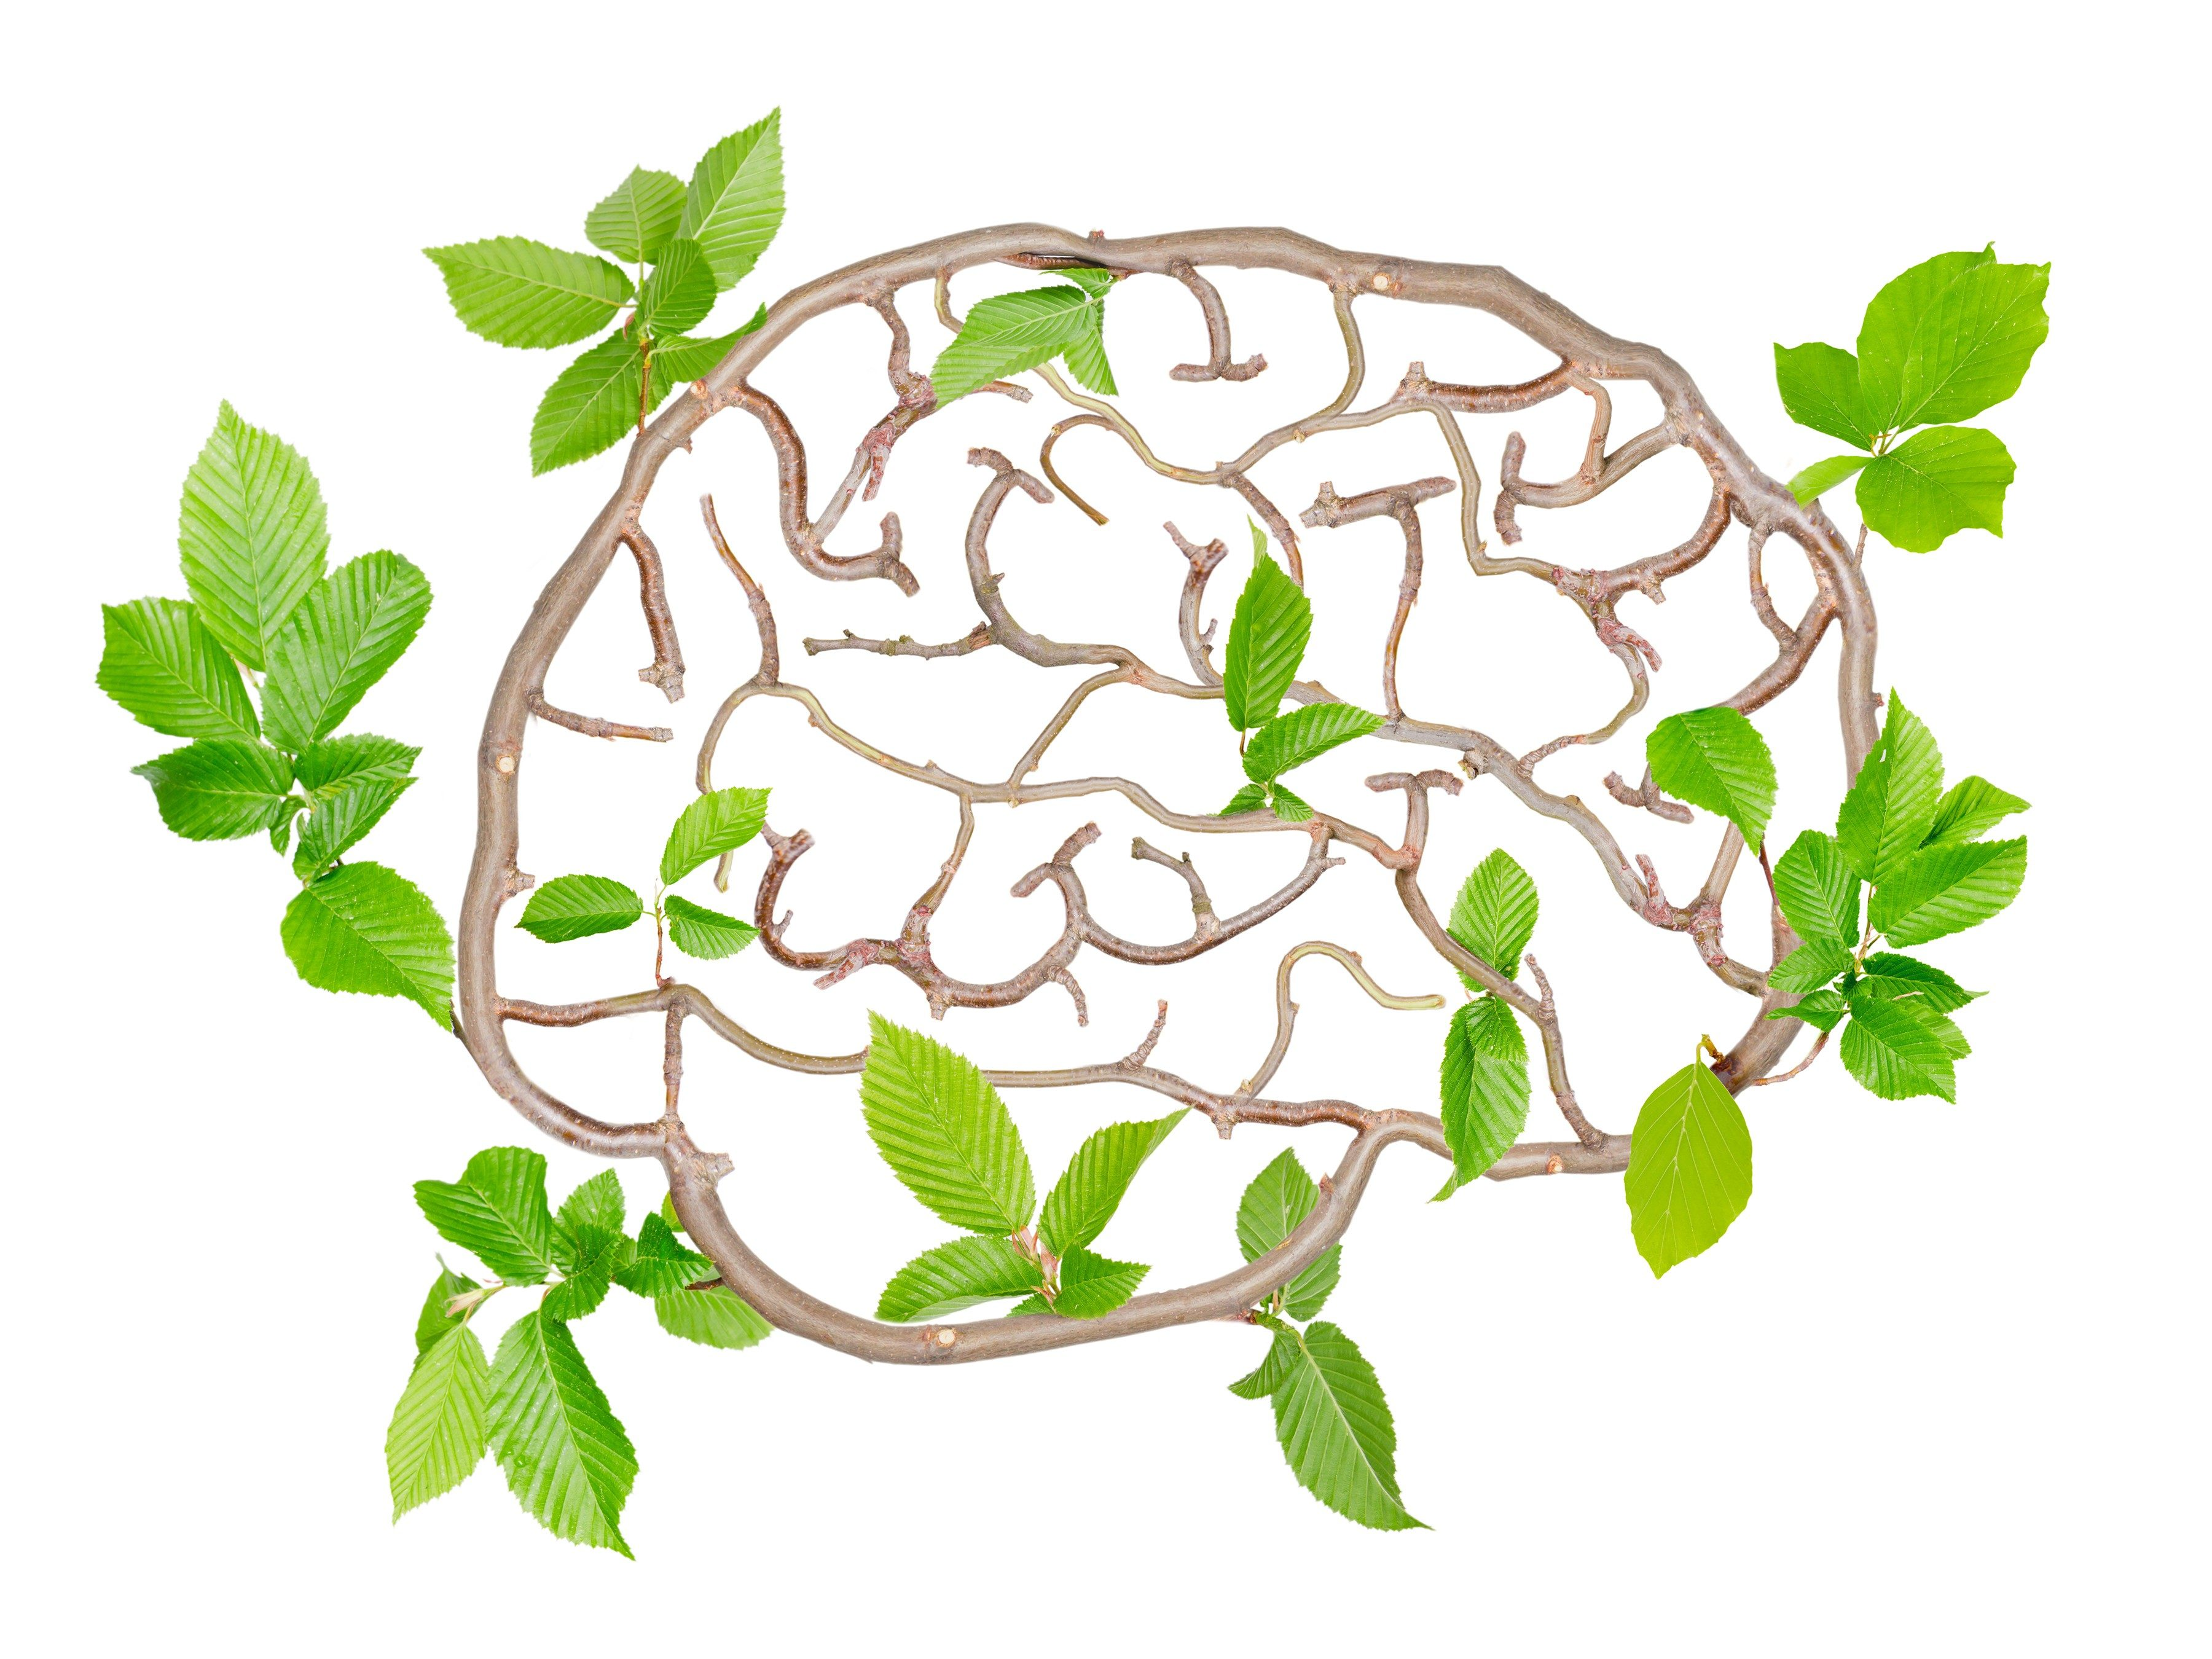 Memory-boosting supplement #4: Acetyl-L-carnitine